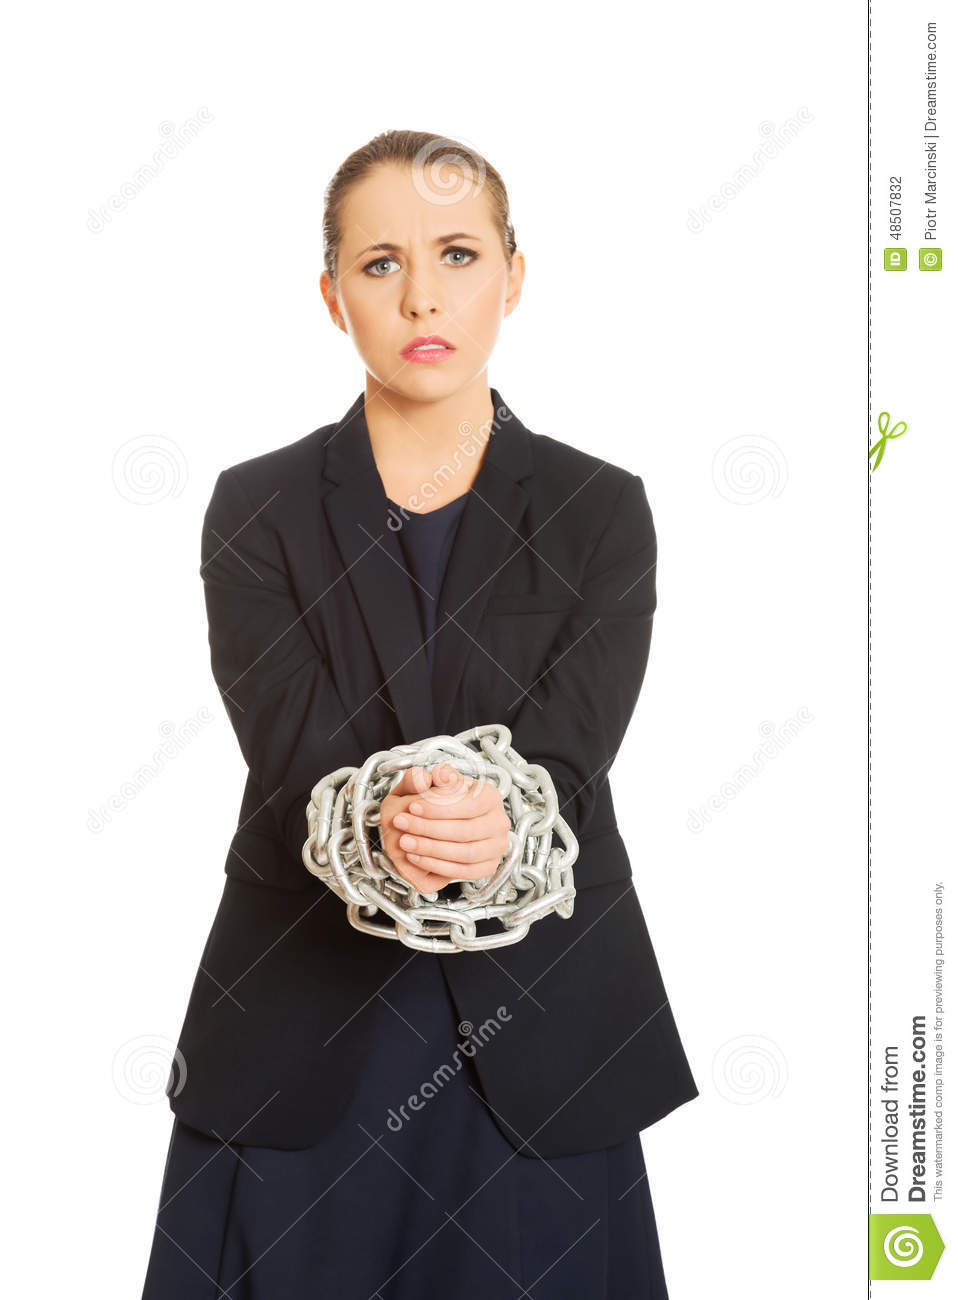 women strapped up for sex